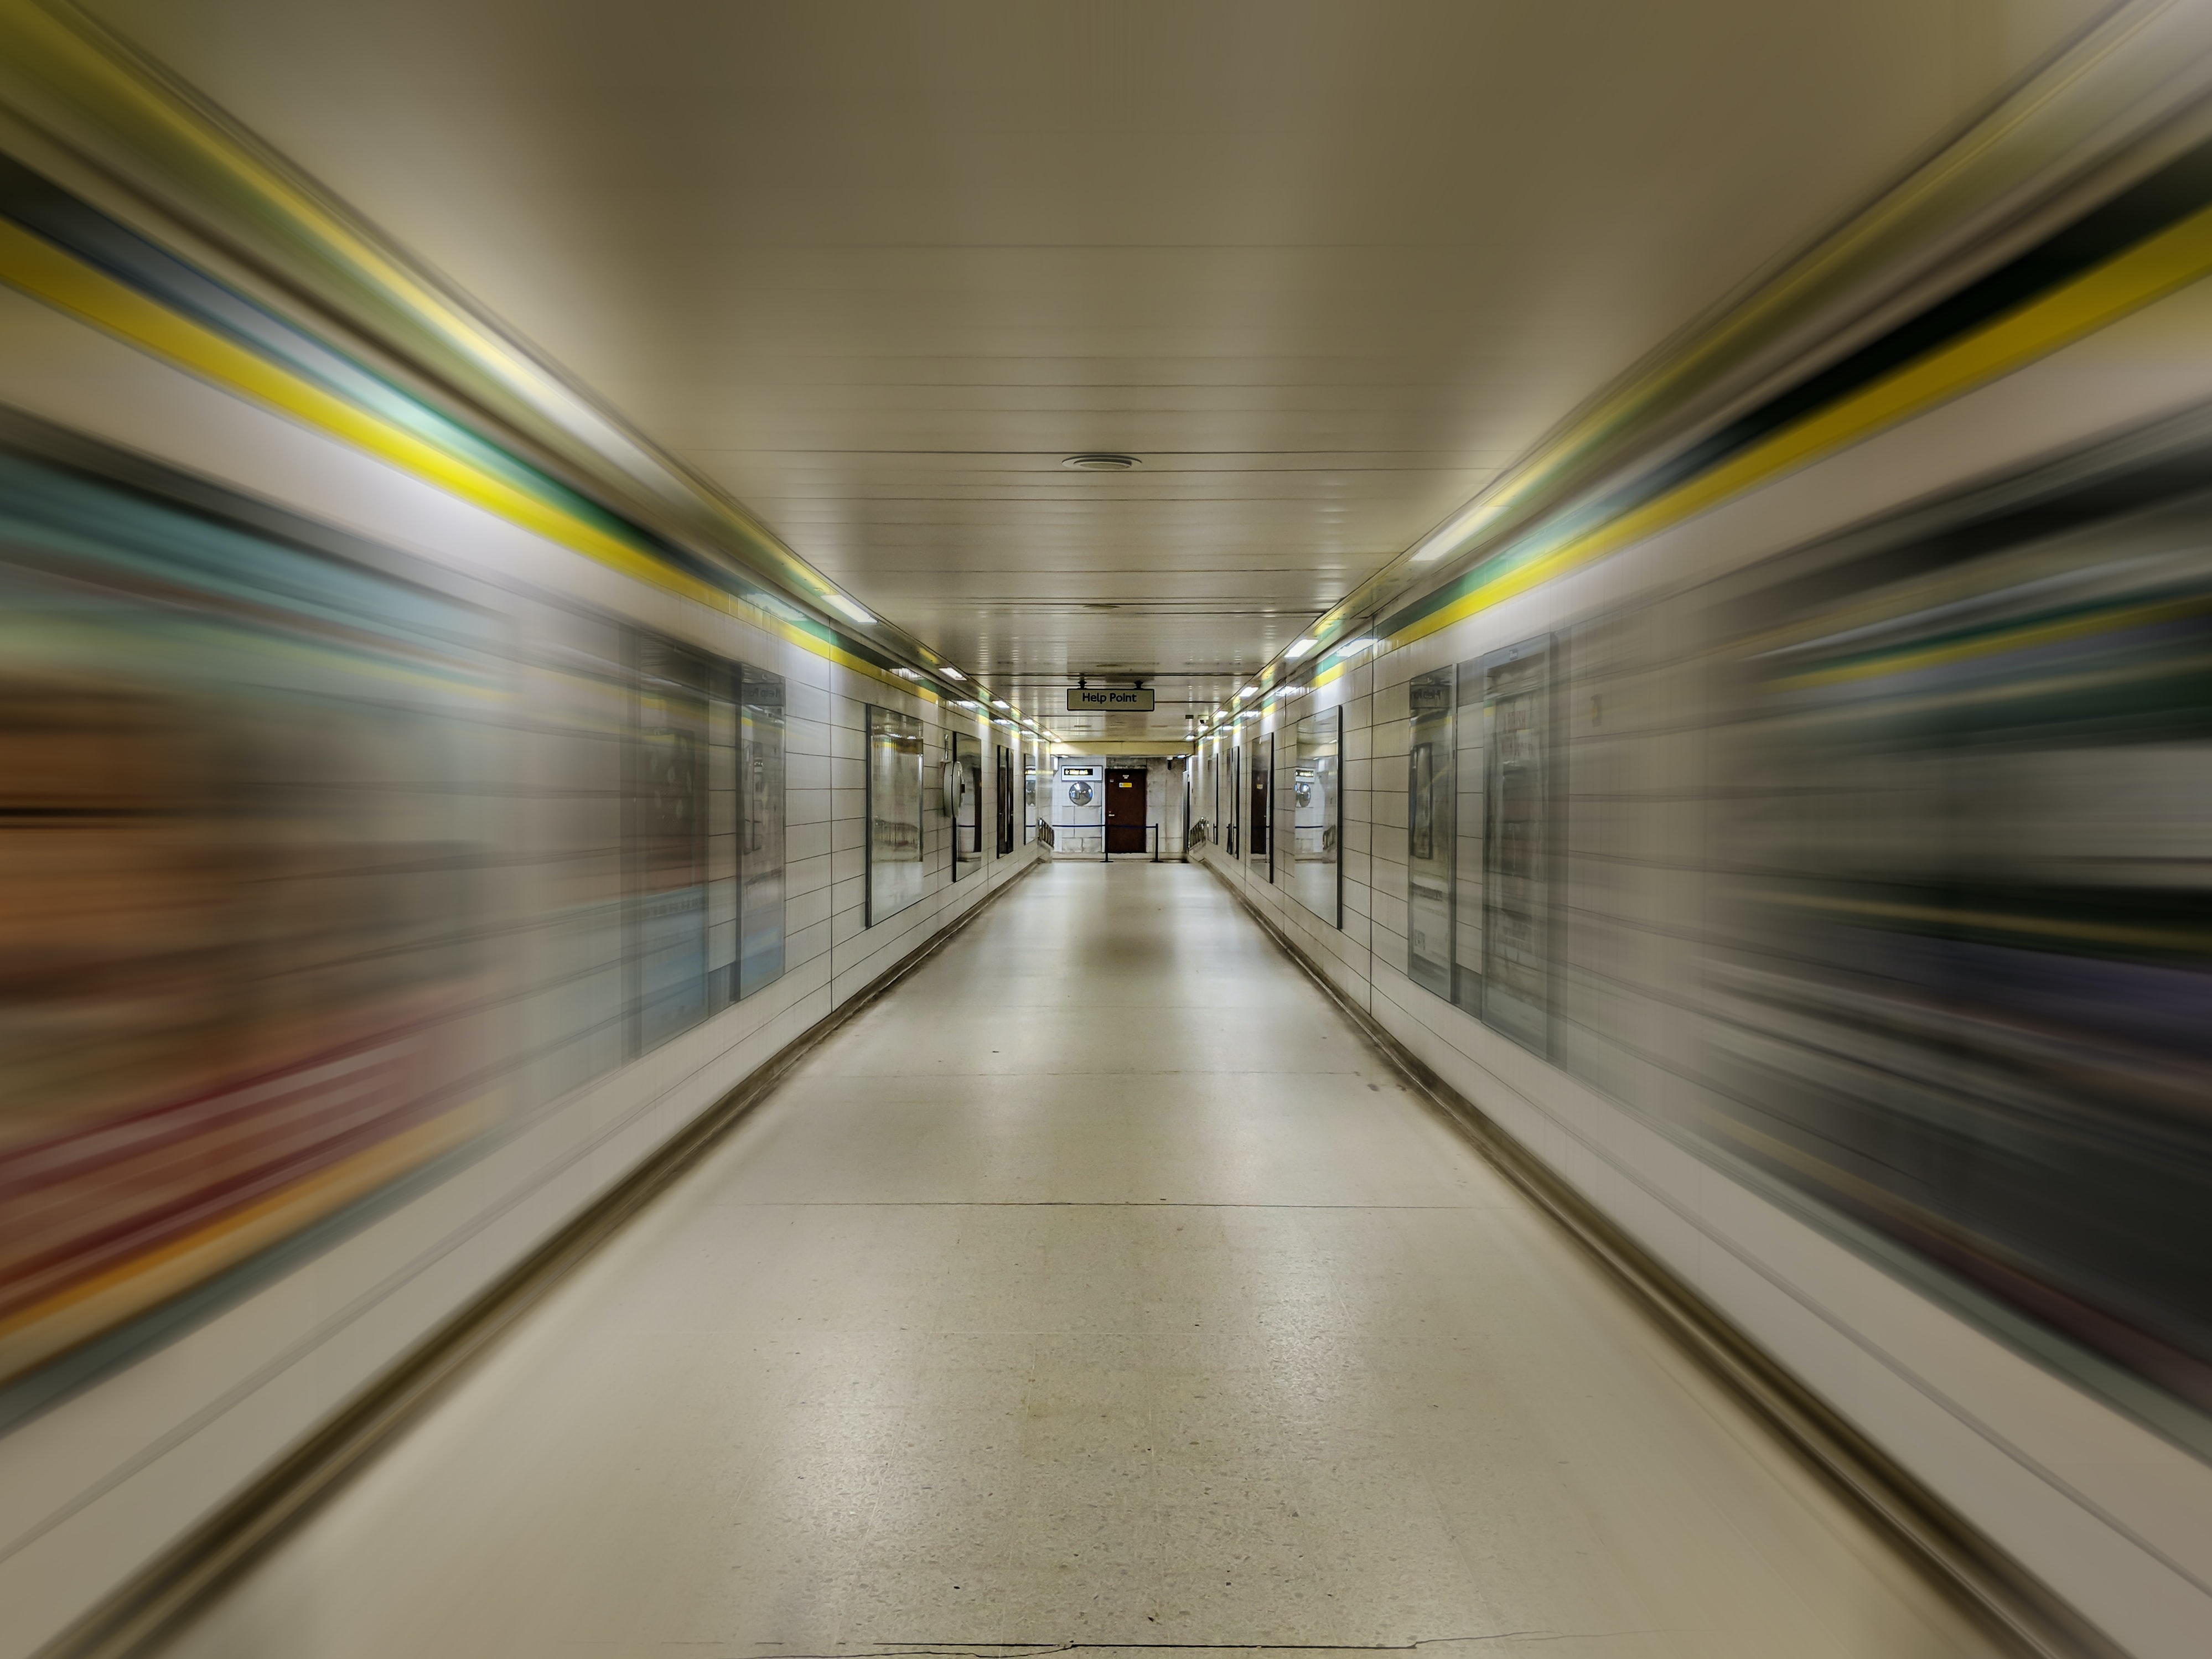 hallway in time lapse photography